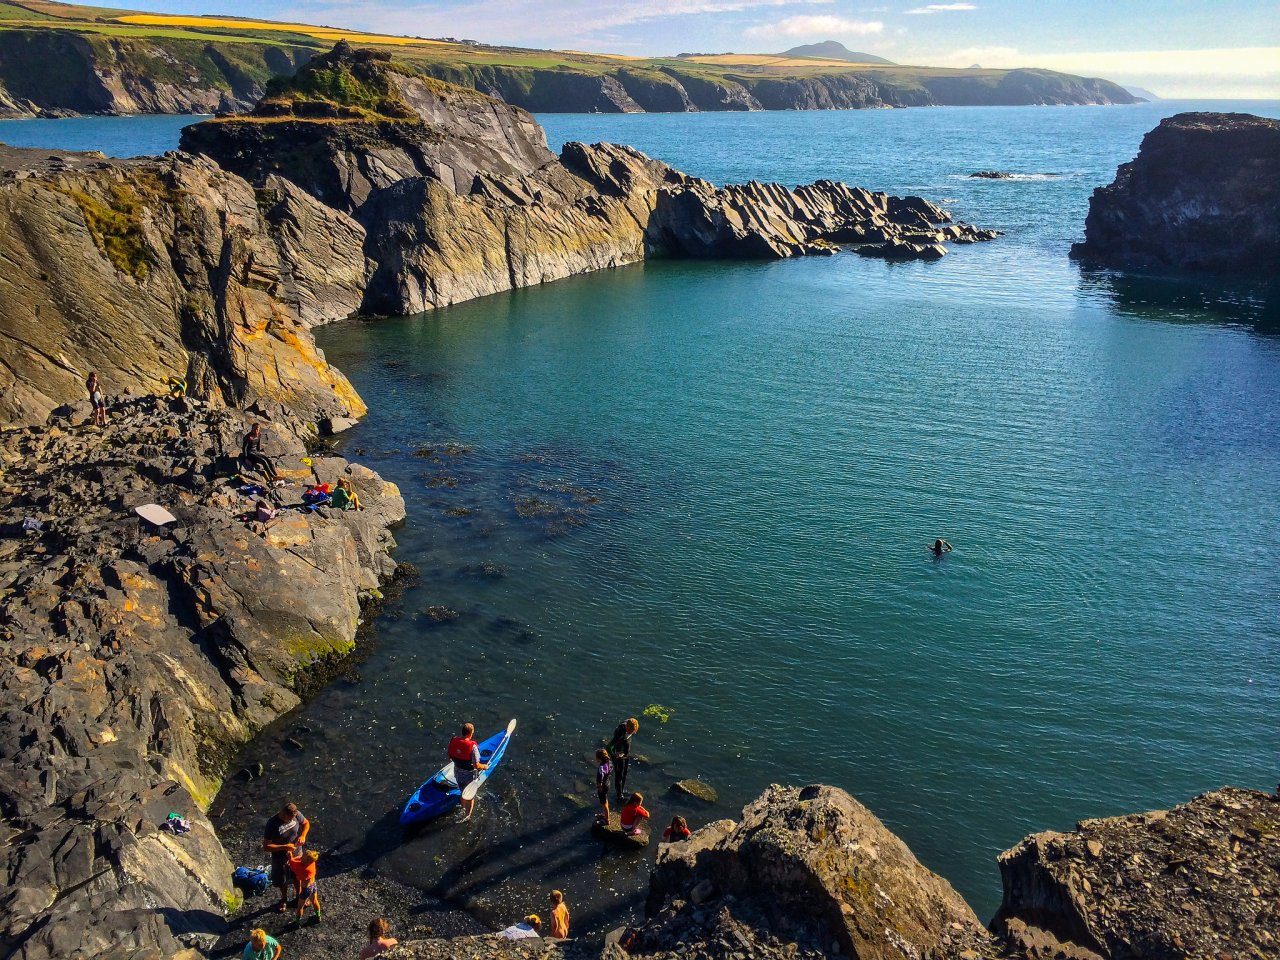 The Blue Lagoon, Abereiddy, Pembrokeshire, Wales, Best places to visit in the UK